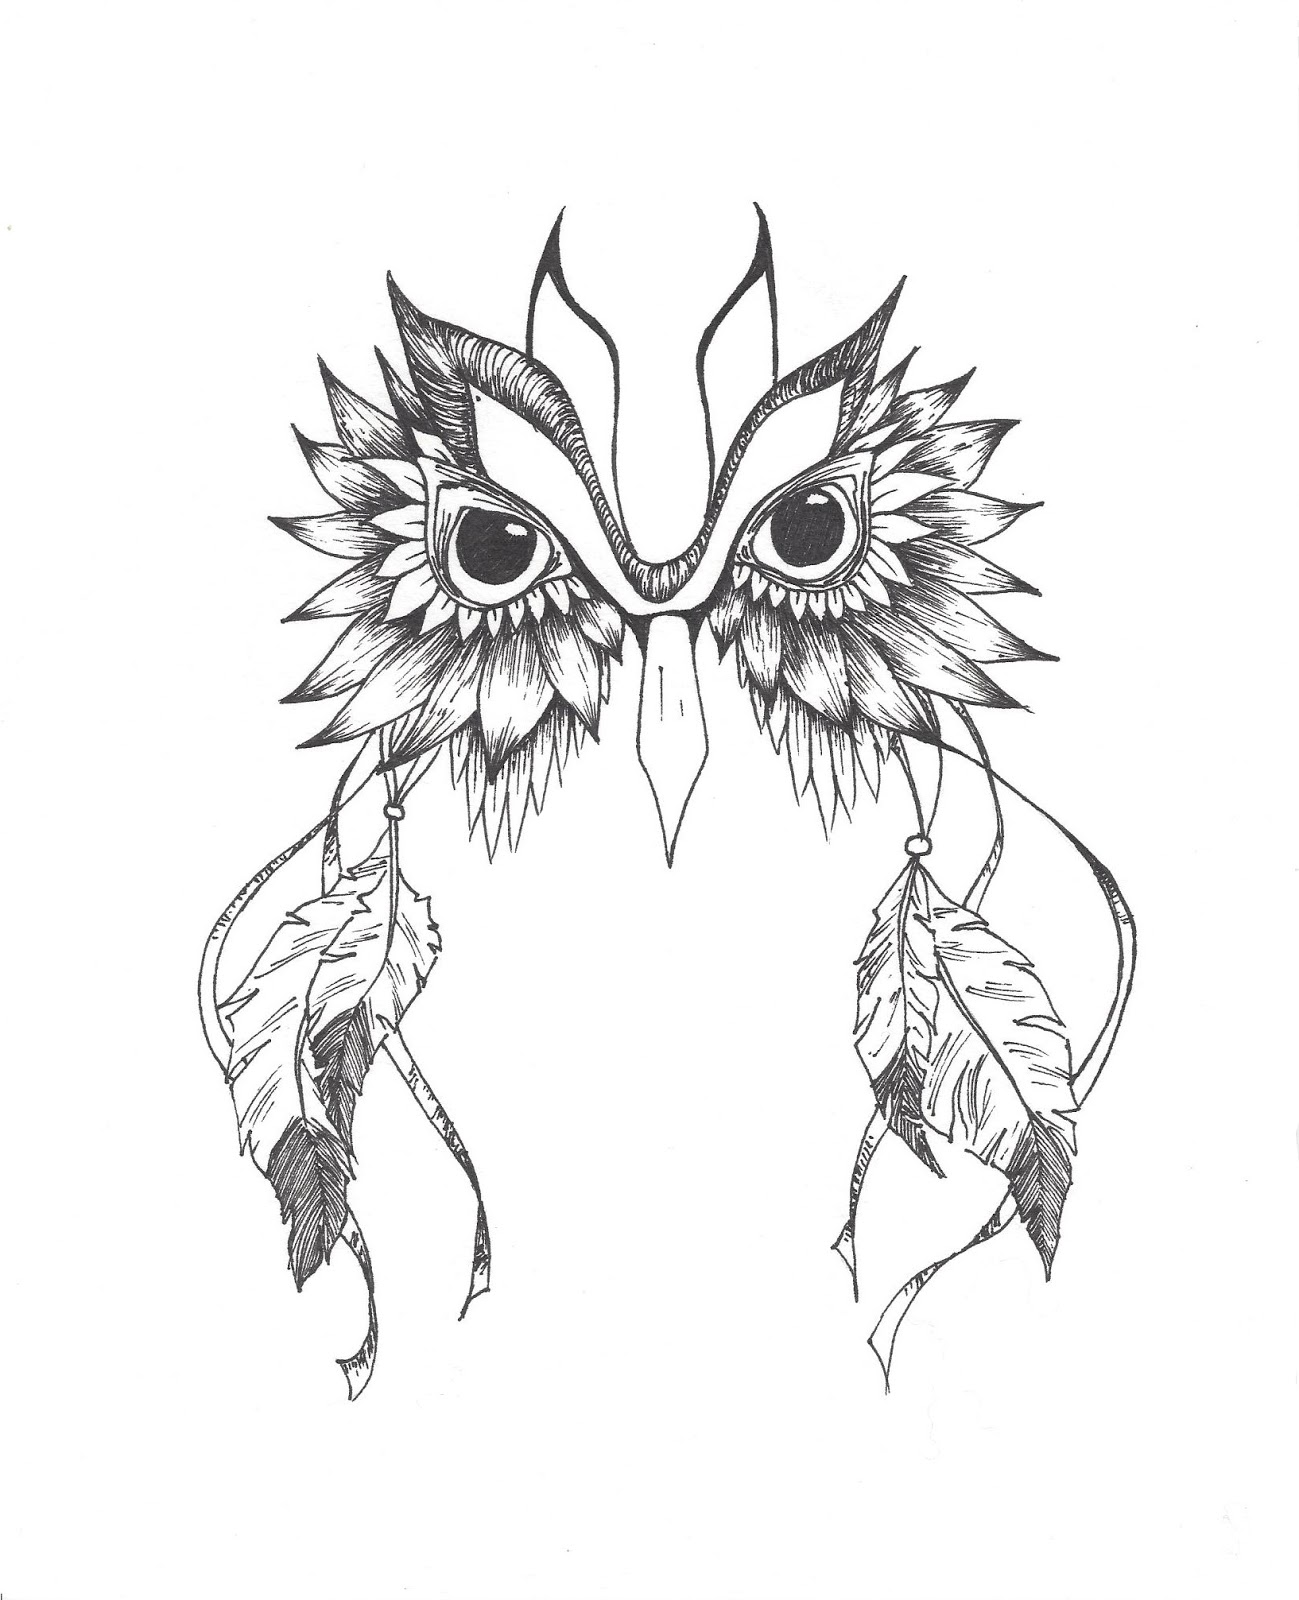 Owl dreamcatcher drawing - photo#4